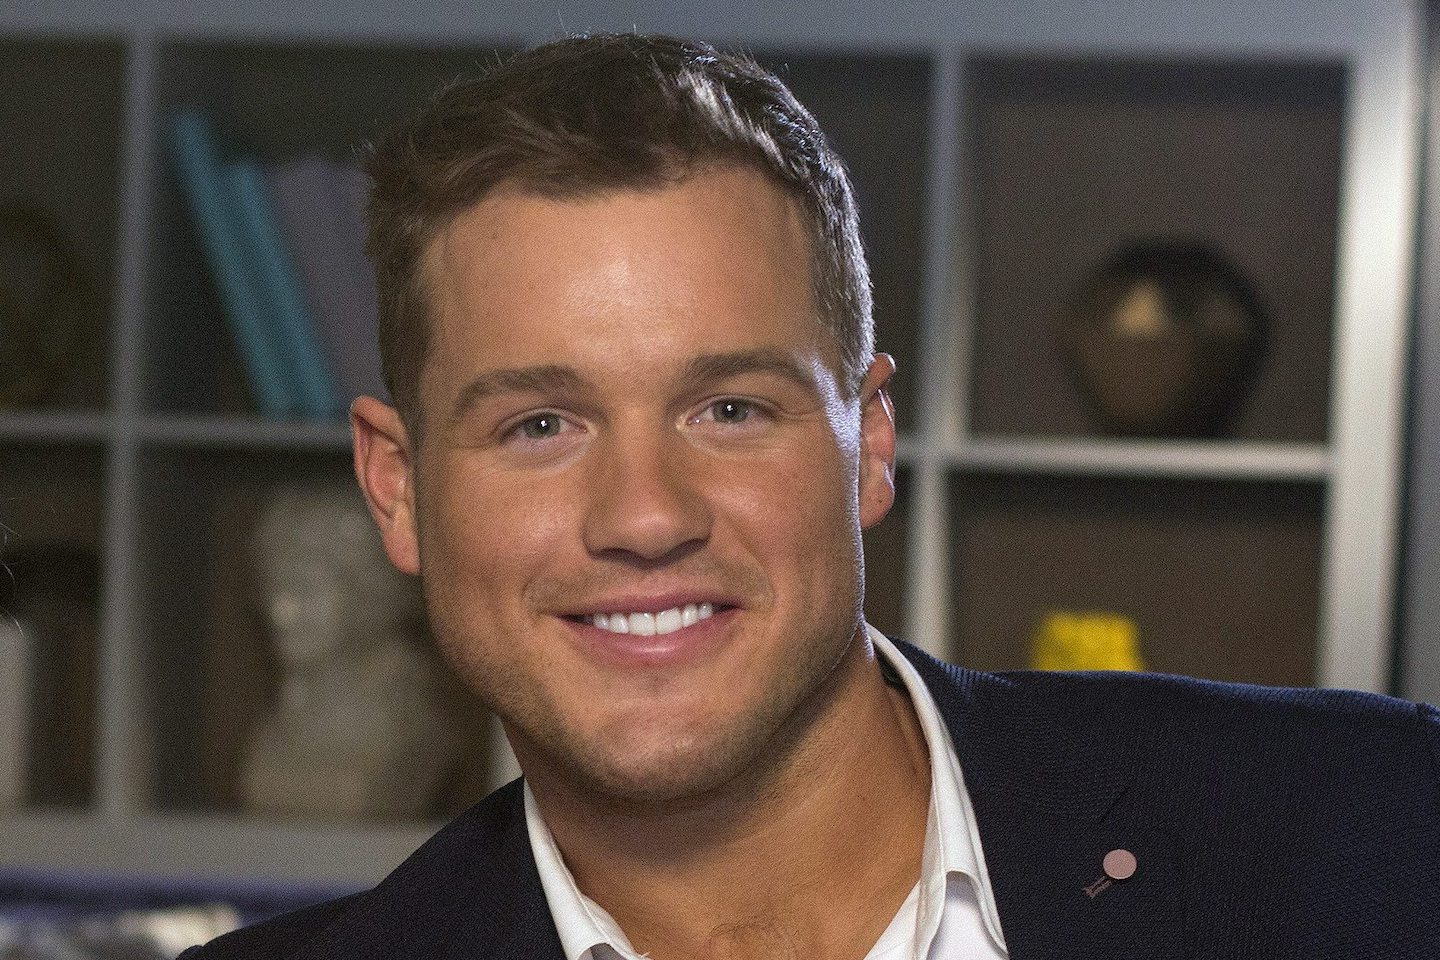 Colton Underwood Joins Chat4Good To Interact With Fans In The Name Of COVID-19 Relief